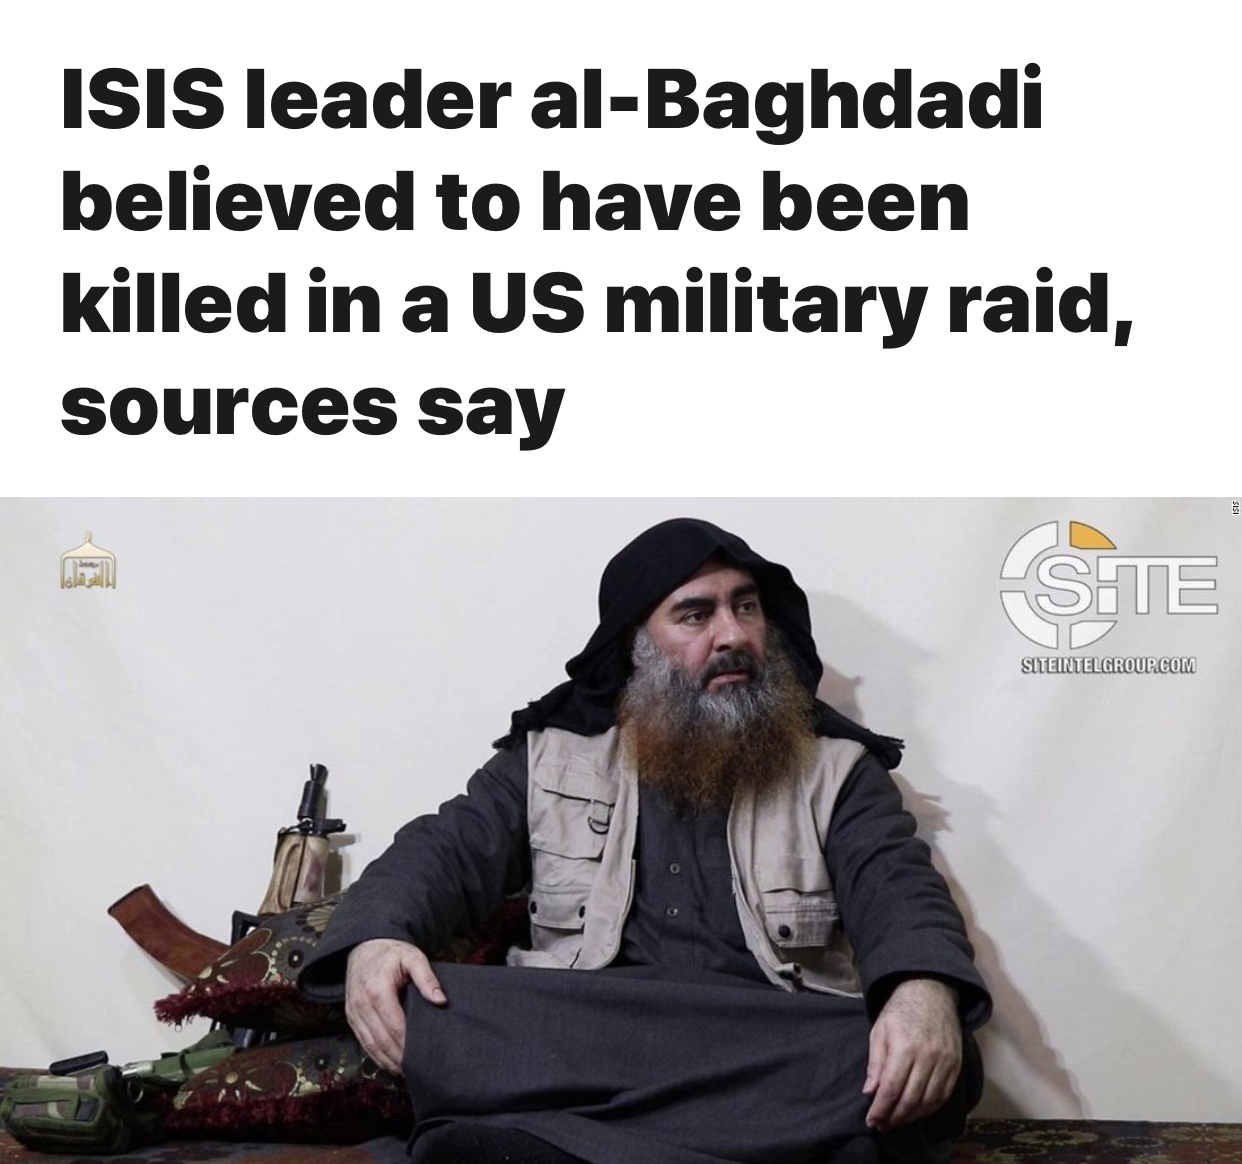 ISIS leader Abu Bakr al-Baghdadi believed to have been killed in US military raid